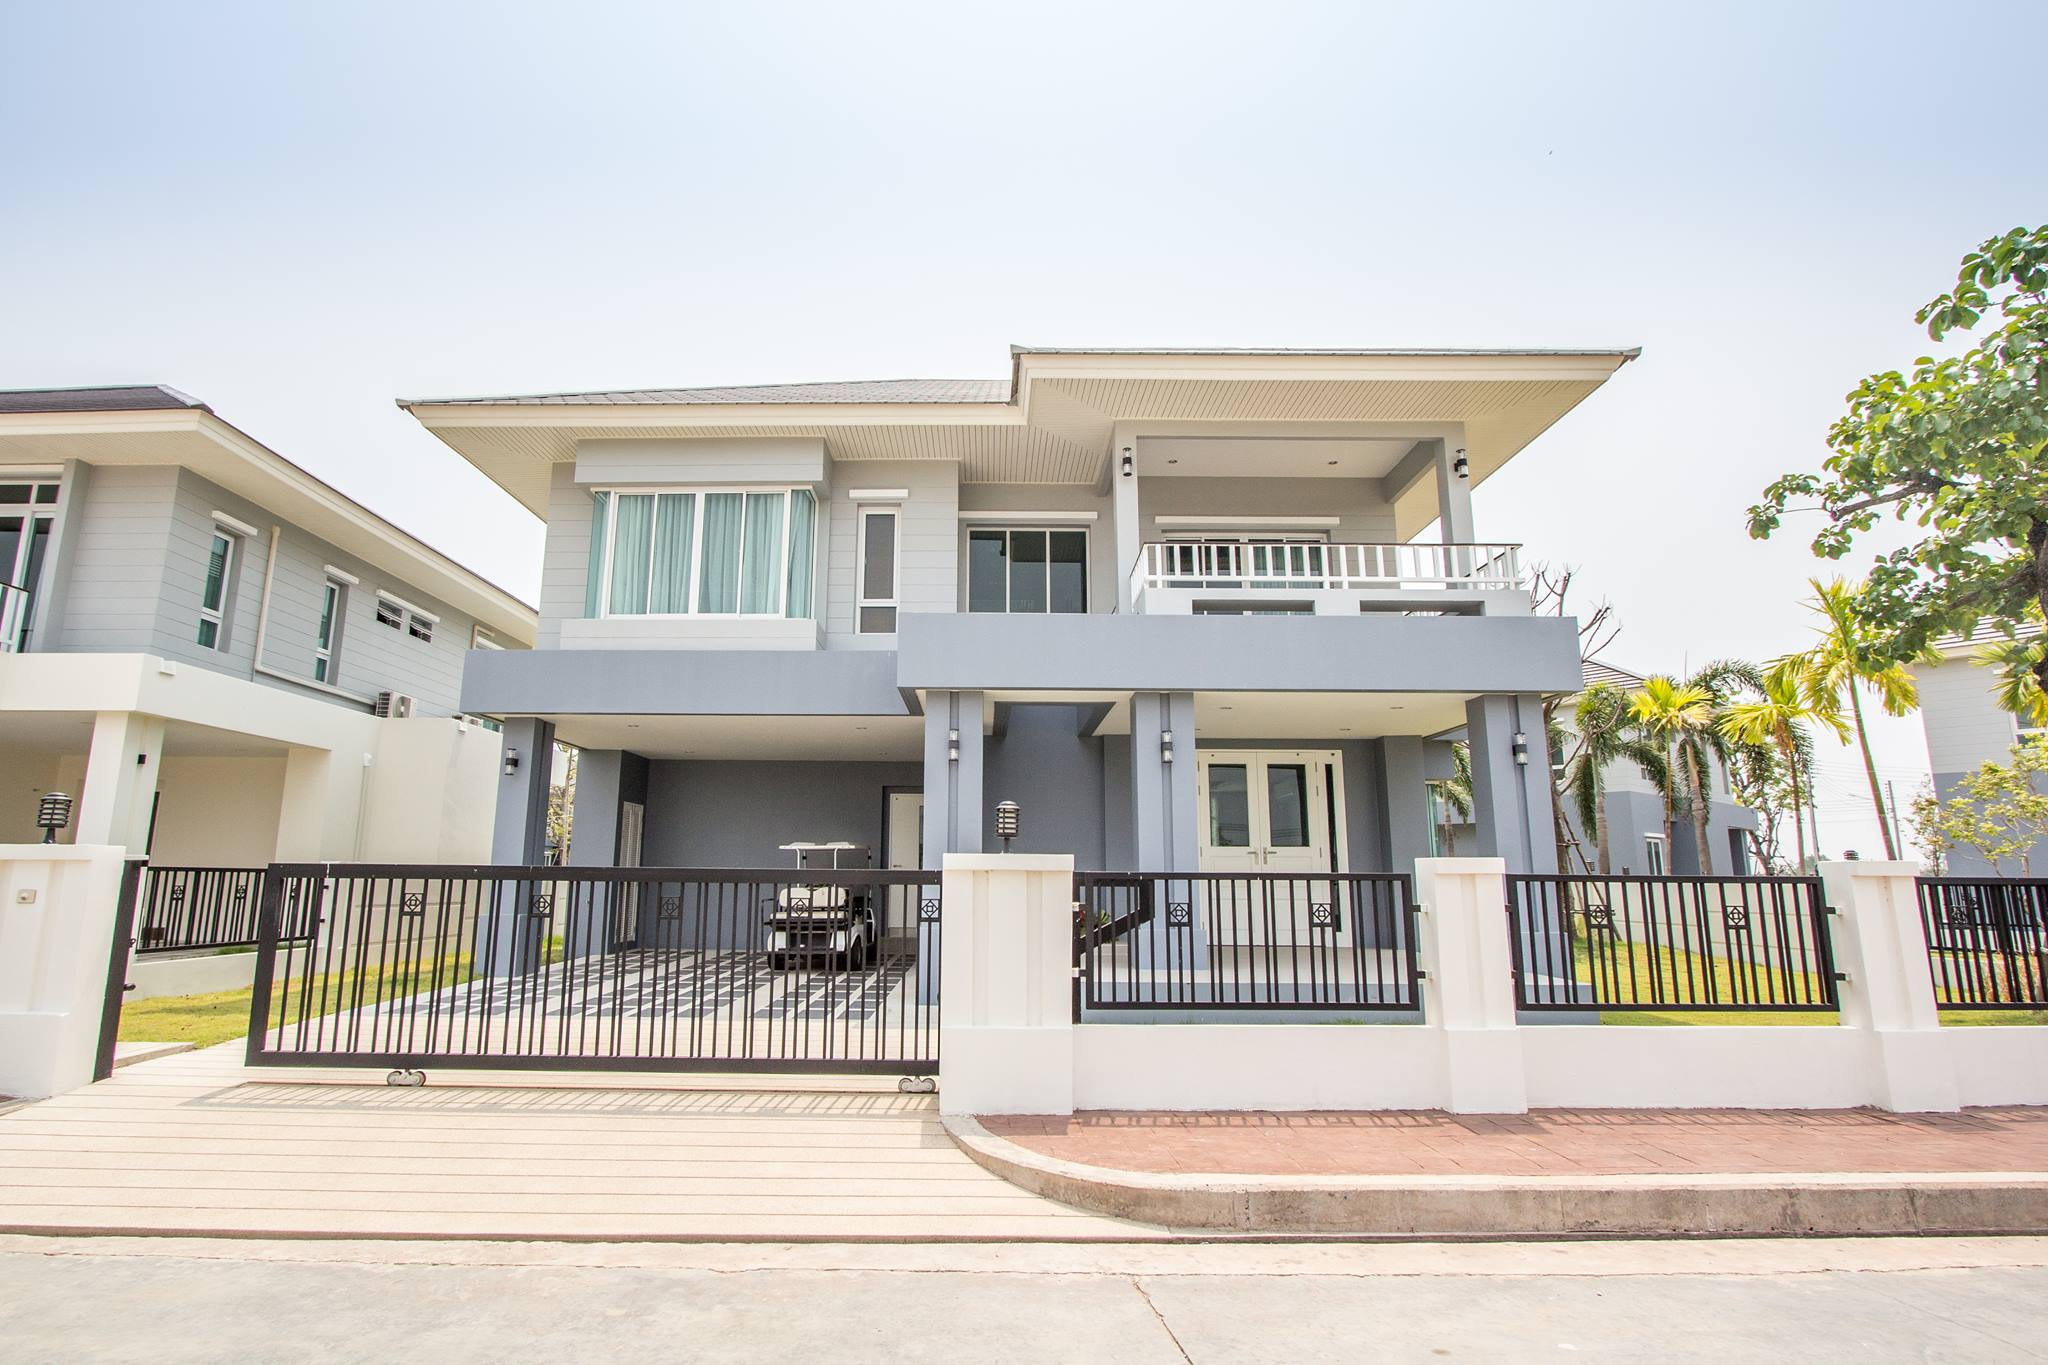 Brand-new High Quality Two-floor Houses near Buriram Centre